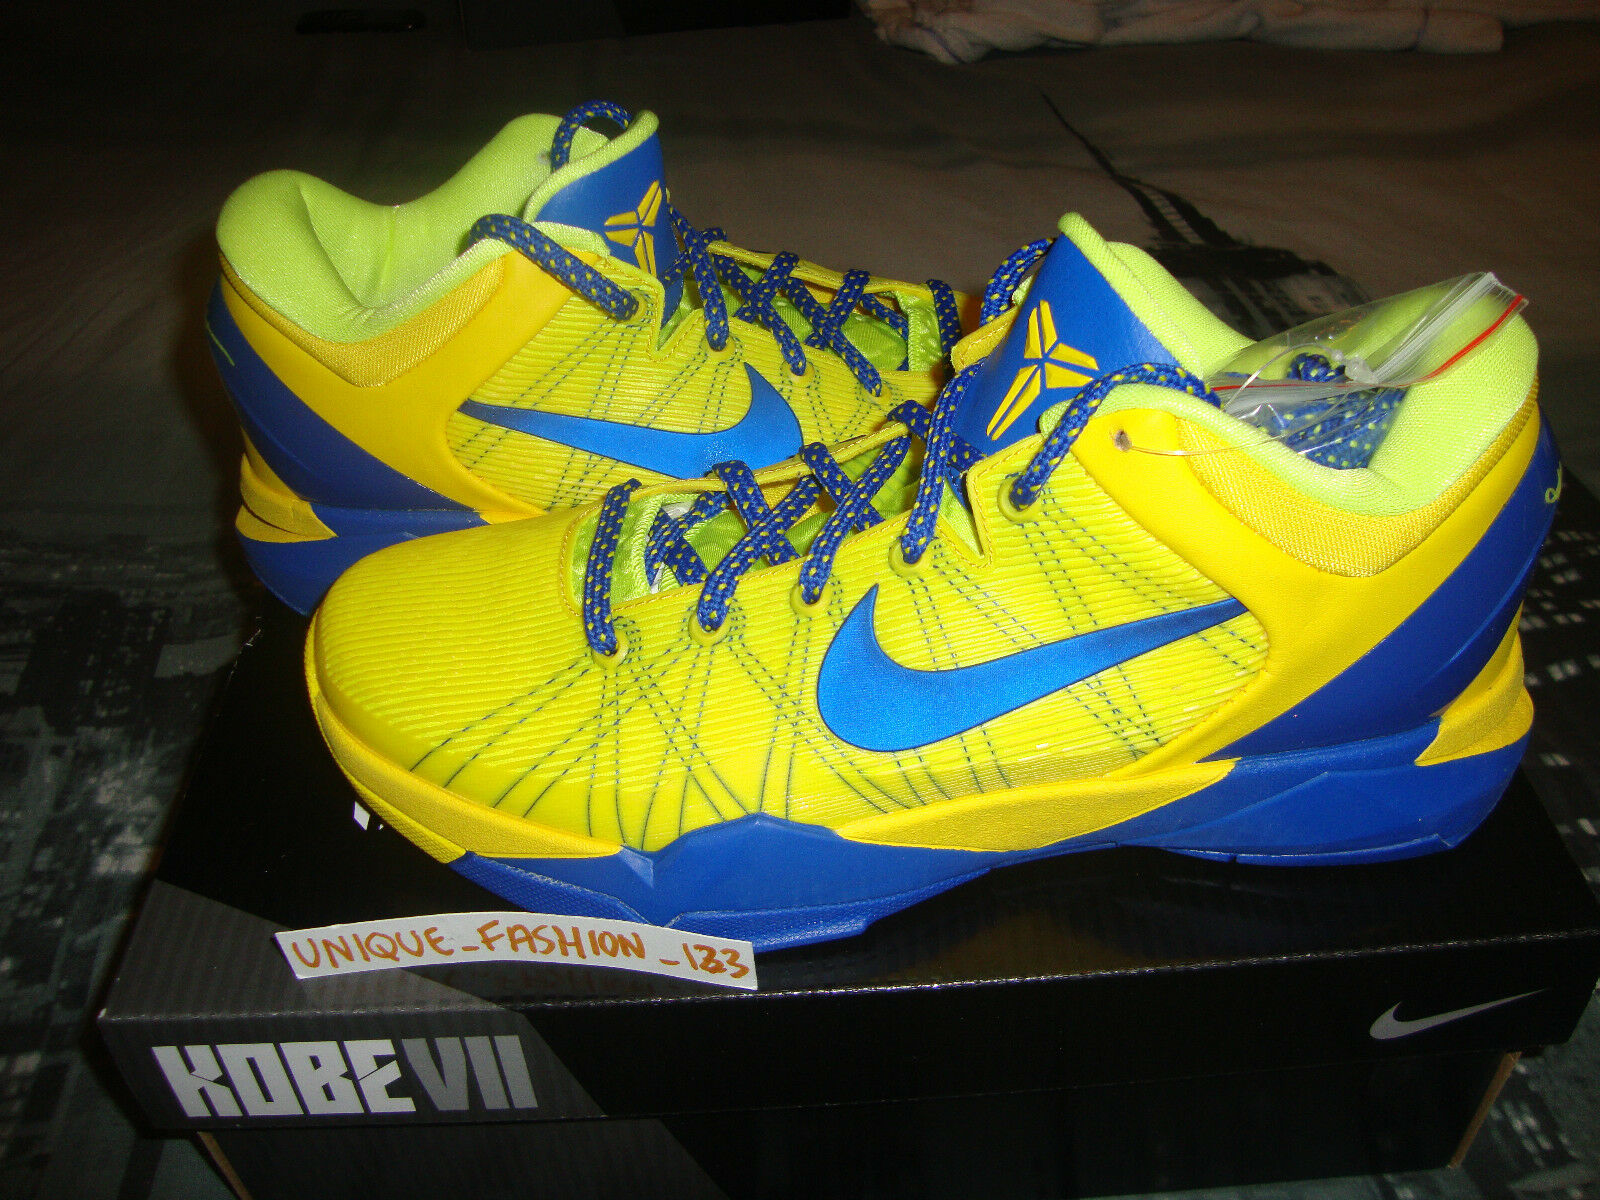 2012 NIKE KOBE VII 7 FC BARCELONA BARCA HOME AWAY YELLOW US 12.5